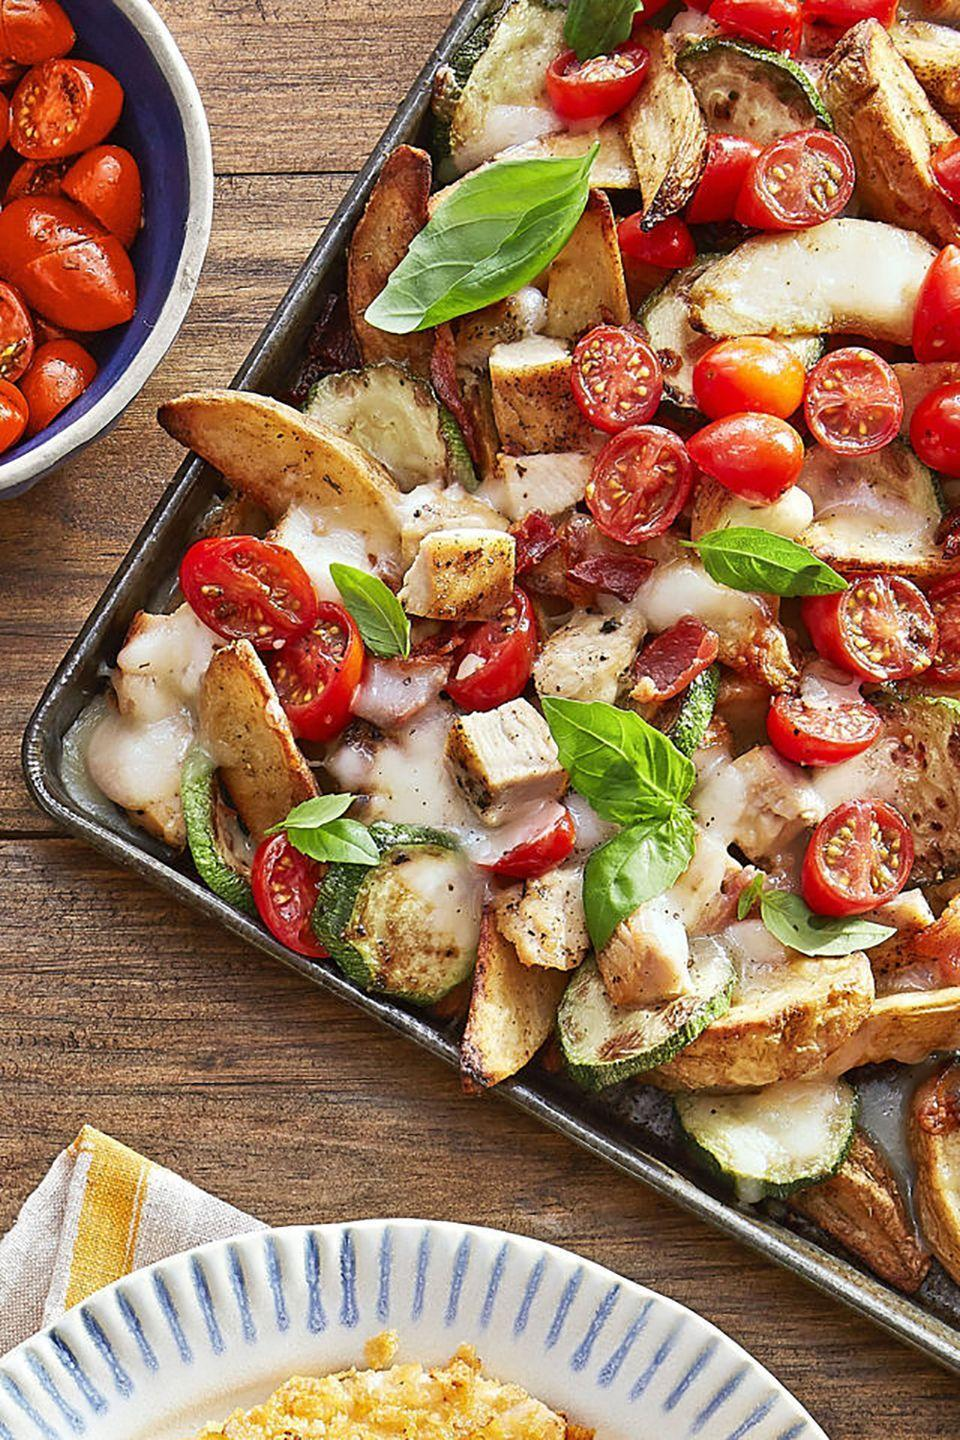 "<p>Forget chips—these potato wedges are loaded with yummy tomatoes, a mozzarella cheese blend, and fresh basil.</p><p><strong><a href=""https://www.countryliving.com/food-drinks/recipes/a44281/italian-potato-wedge-nachos-recipe/"" rel=""nofollow noopener"" target=""_blank"" data-ylk=""slk:Get the recipe"" class=""link rapid-noclick-resp"">Get the recipe</a>.</strong><br></p><p><a class=""link rapid-noclick-resp"" href=""https://www.amazon.com/dp/B00282JL7G?tag=syn-yahoo-20&ascsubtag=%5Bartid%7C10050.g.1050%5Bsrc%7Cyahoo-us"" rel=""nofollow noopener"" target=""_blank"" data-ylk=""slk:SHOP BAKING SHEETS"">SHOP BAKING SHEETS</a><br></p>"